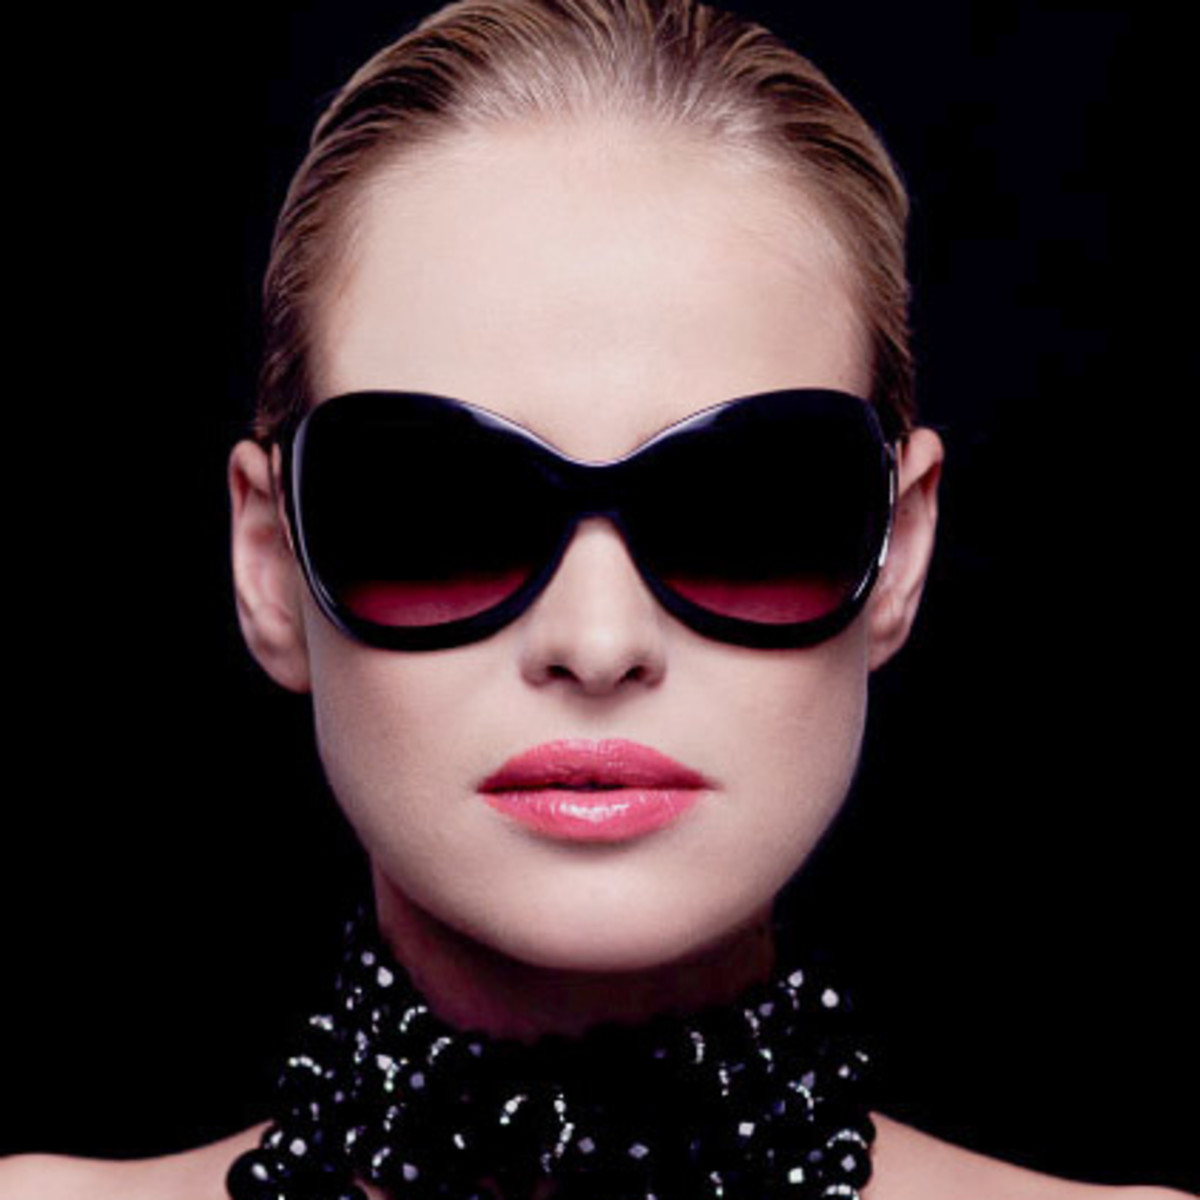 News_Heather Staible_Sex and the City_Jee Vice_sunglasses